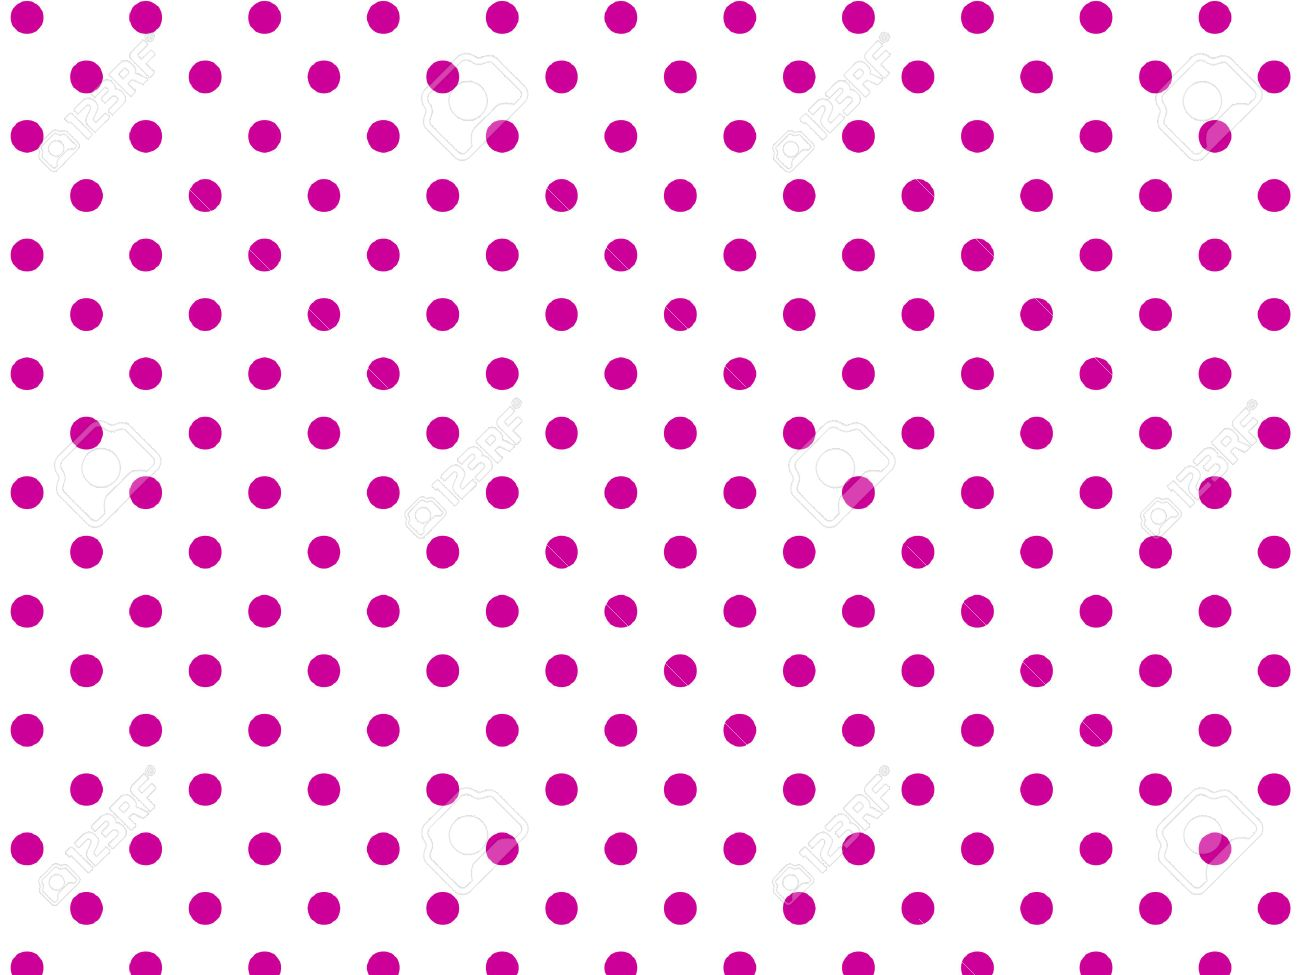 White background with pink polka dots (eps8) - 7359884